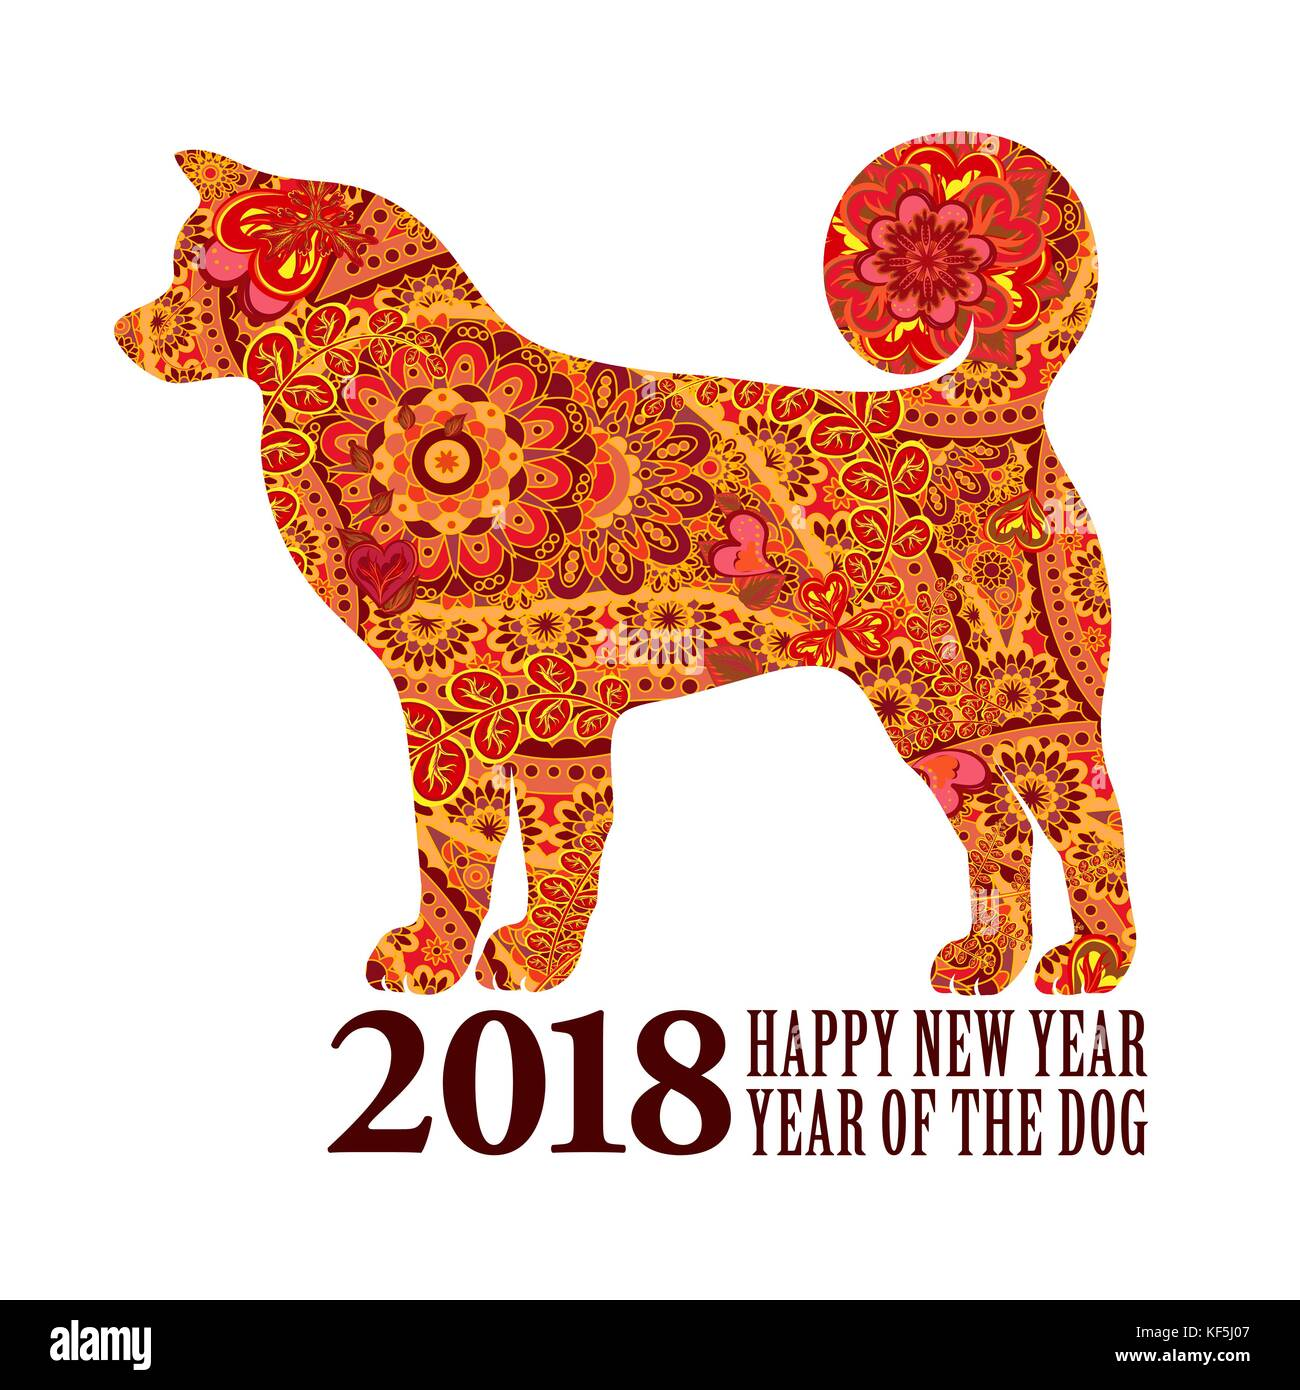 symbol of the 2018 chinese new year design for greeting cards calendars banners posters invitations